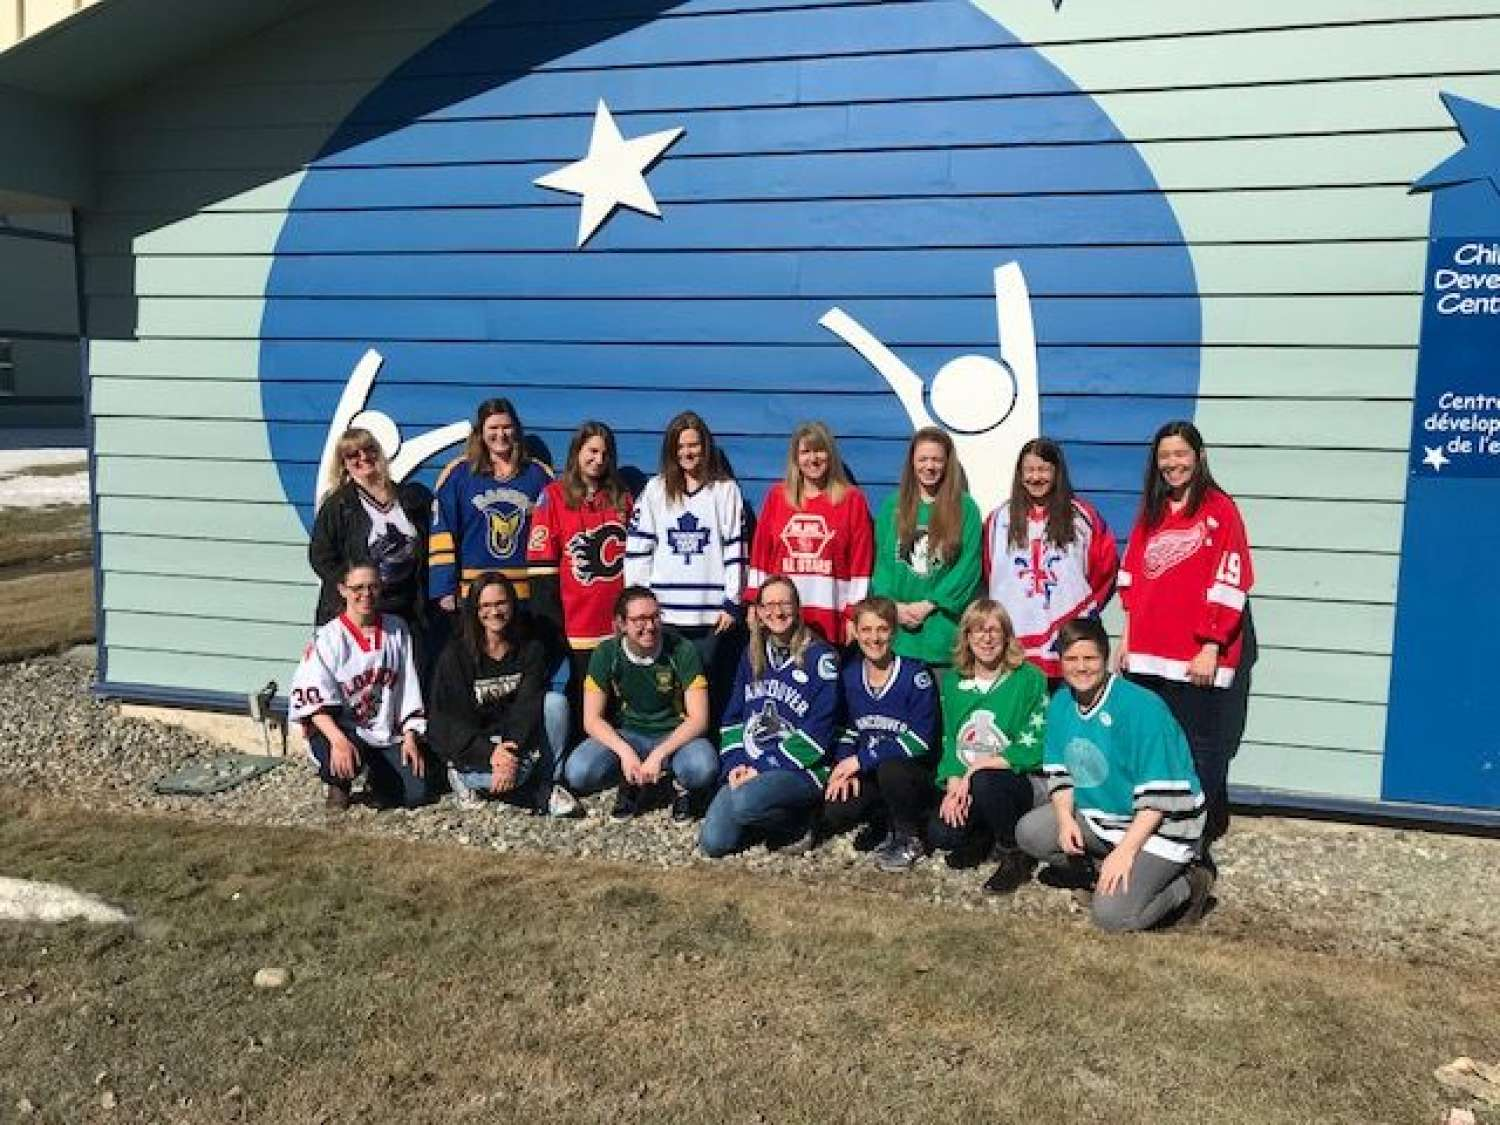 Our staff #jerseysfor humbolt